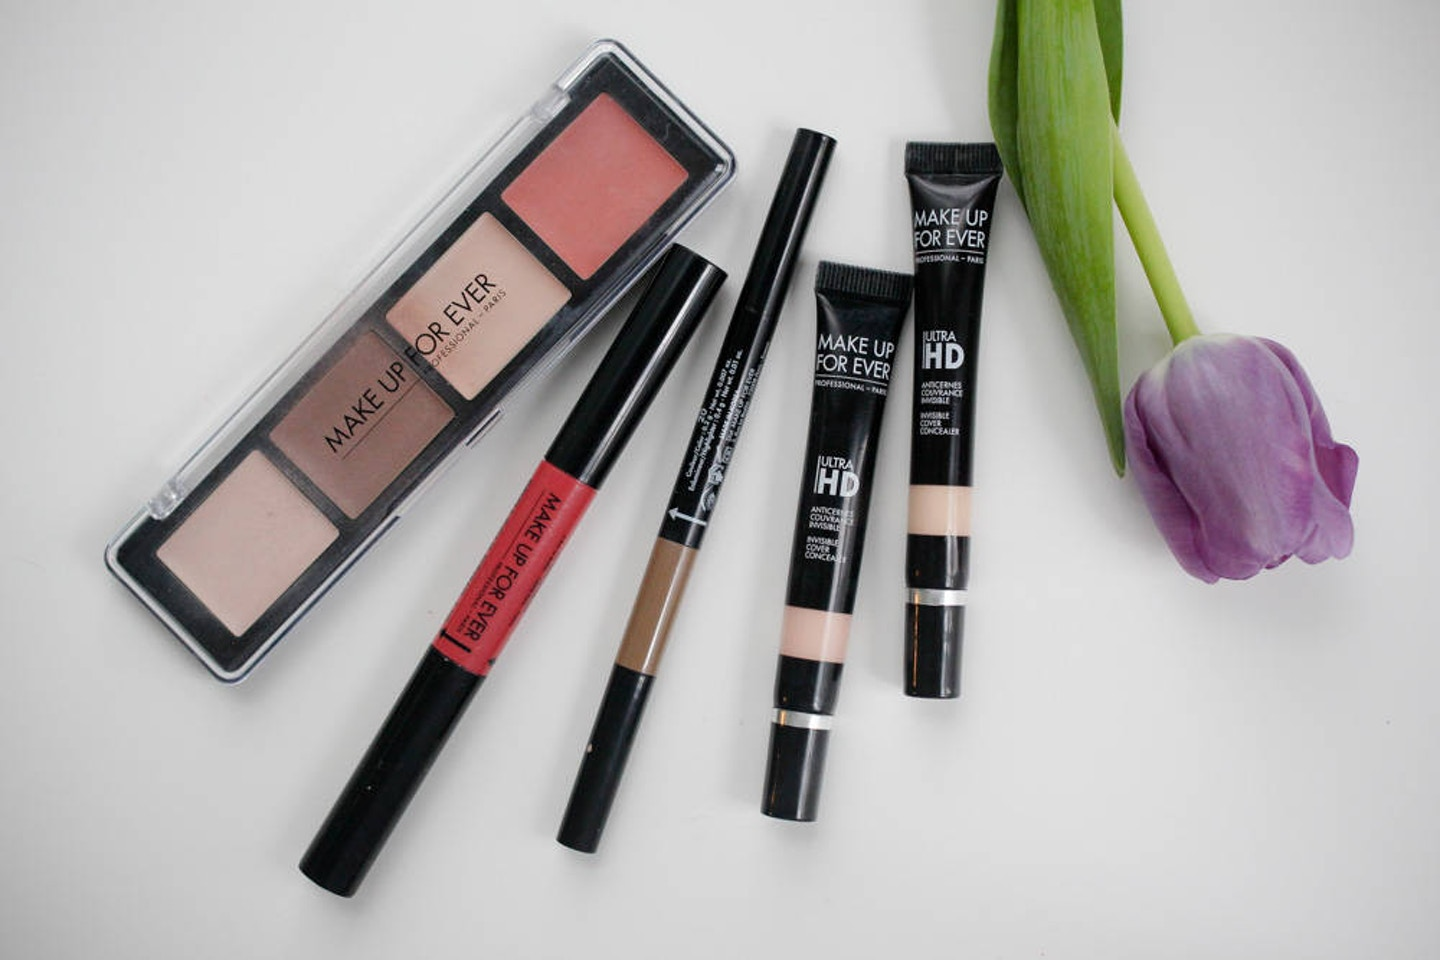 Make Up For Ever Pro Sculpting Collection review